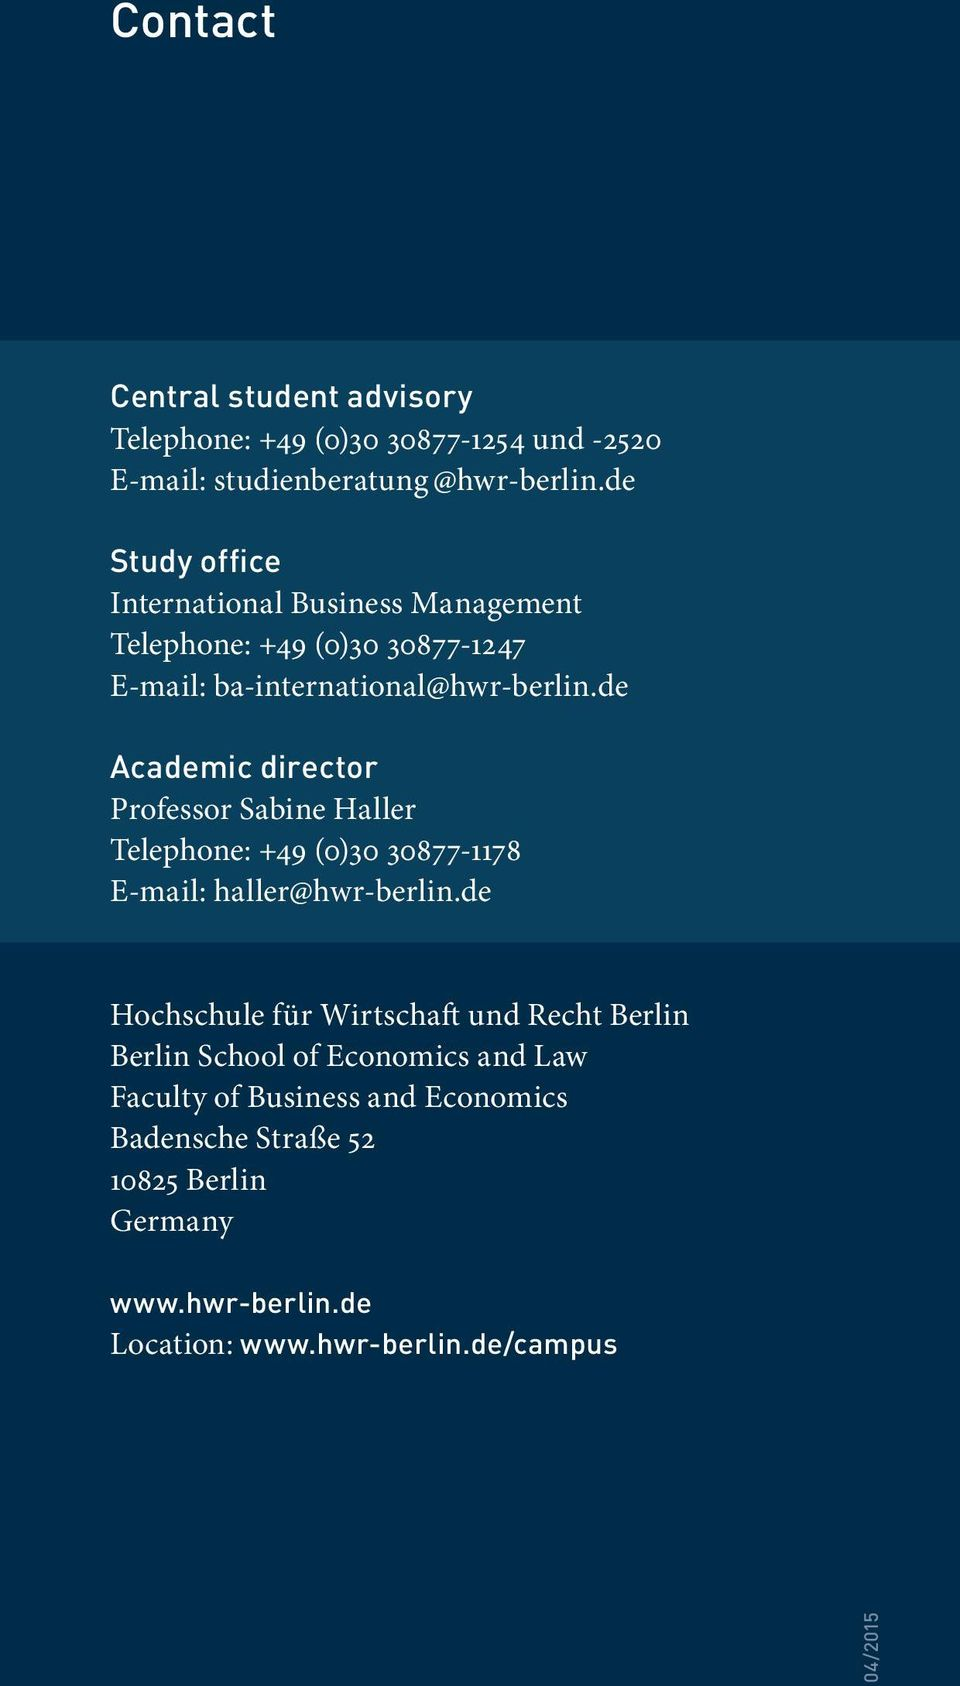 de Academic director Professor Sabine Haller Telephone: +49 (0)30 30877-1178 E-mail: haller@hwr-berlin.